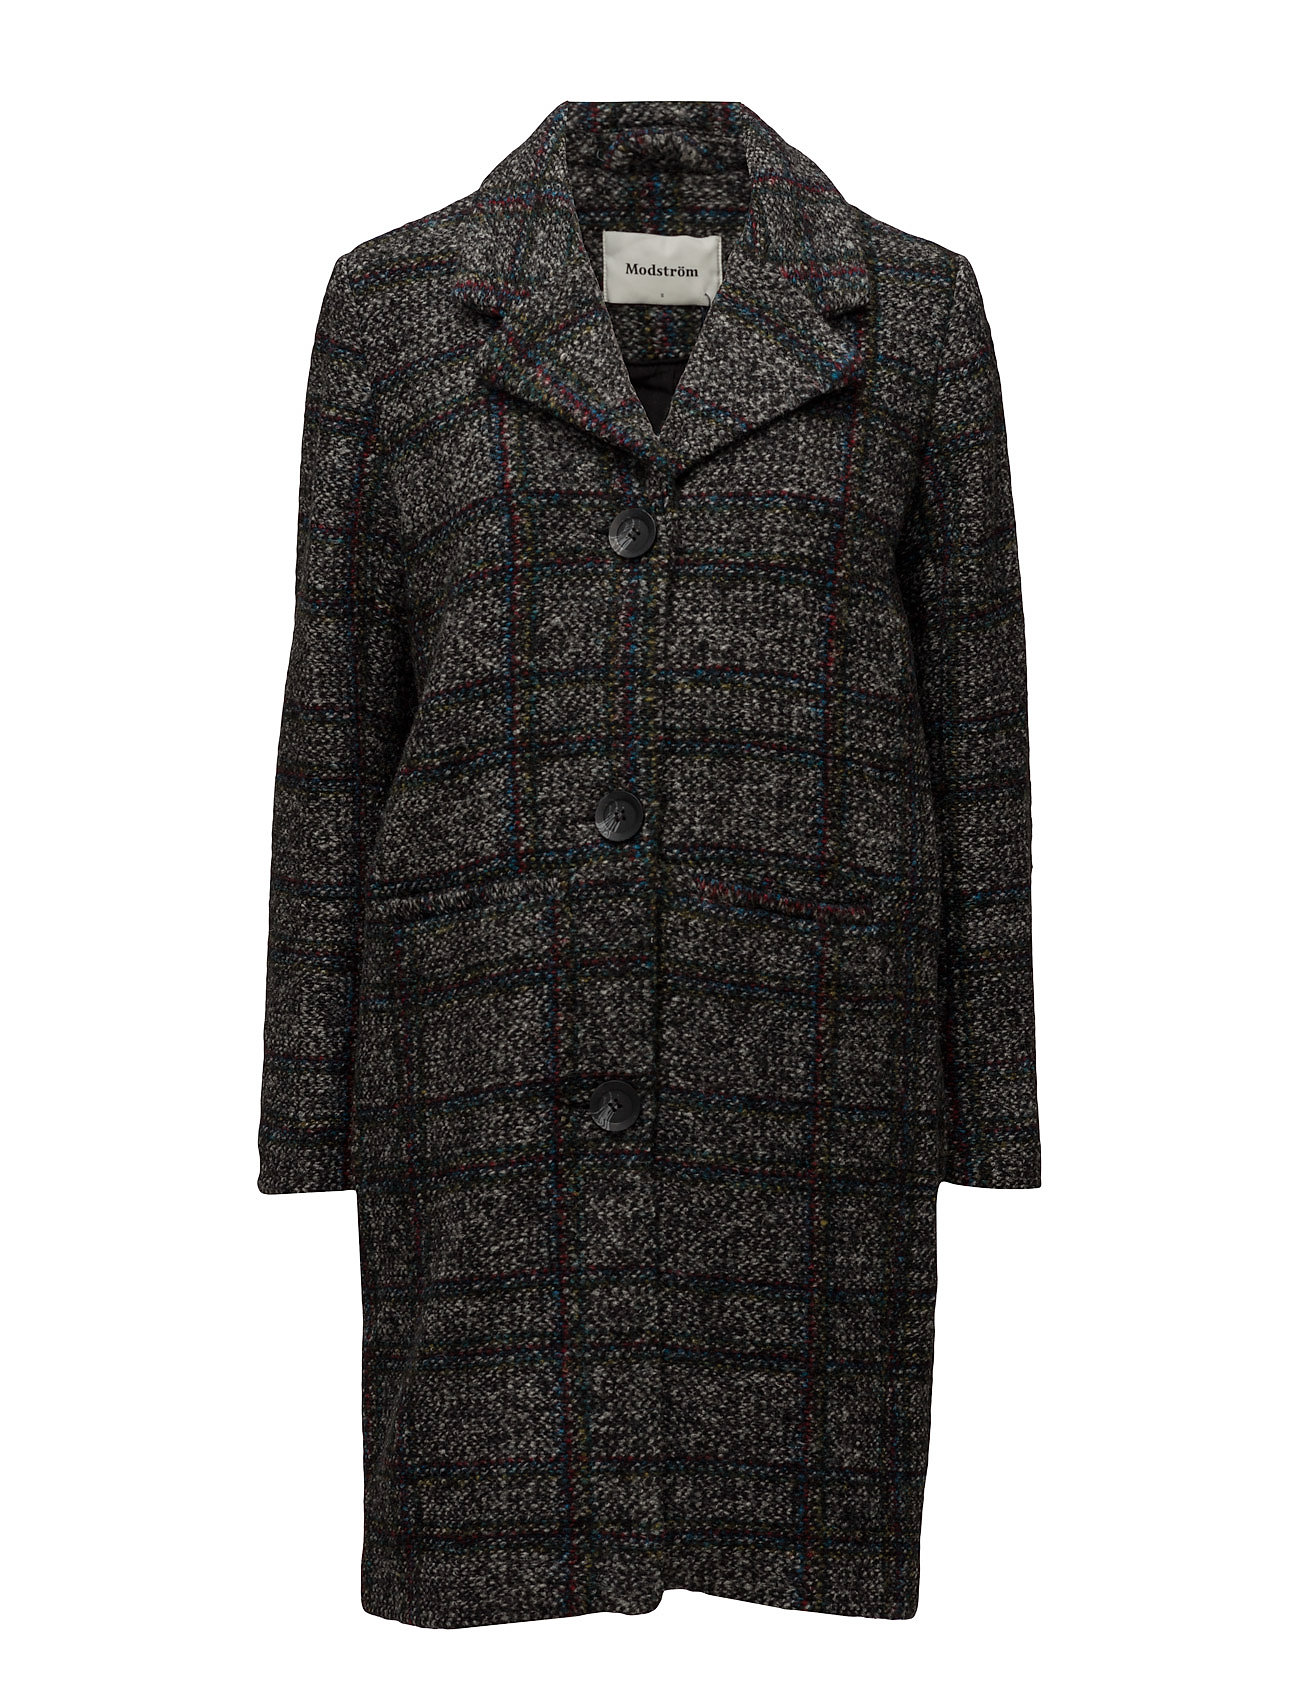 Modstrom Brooklyn Check Coat